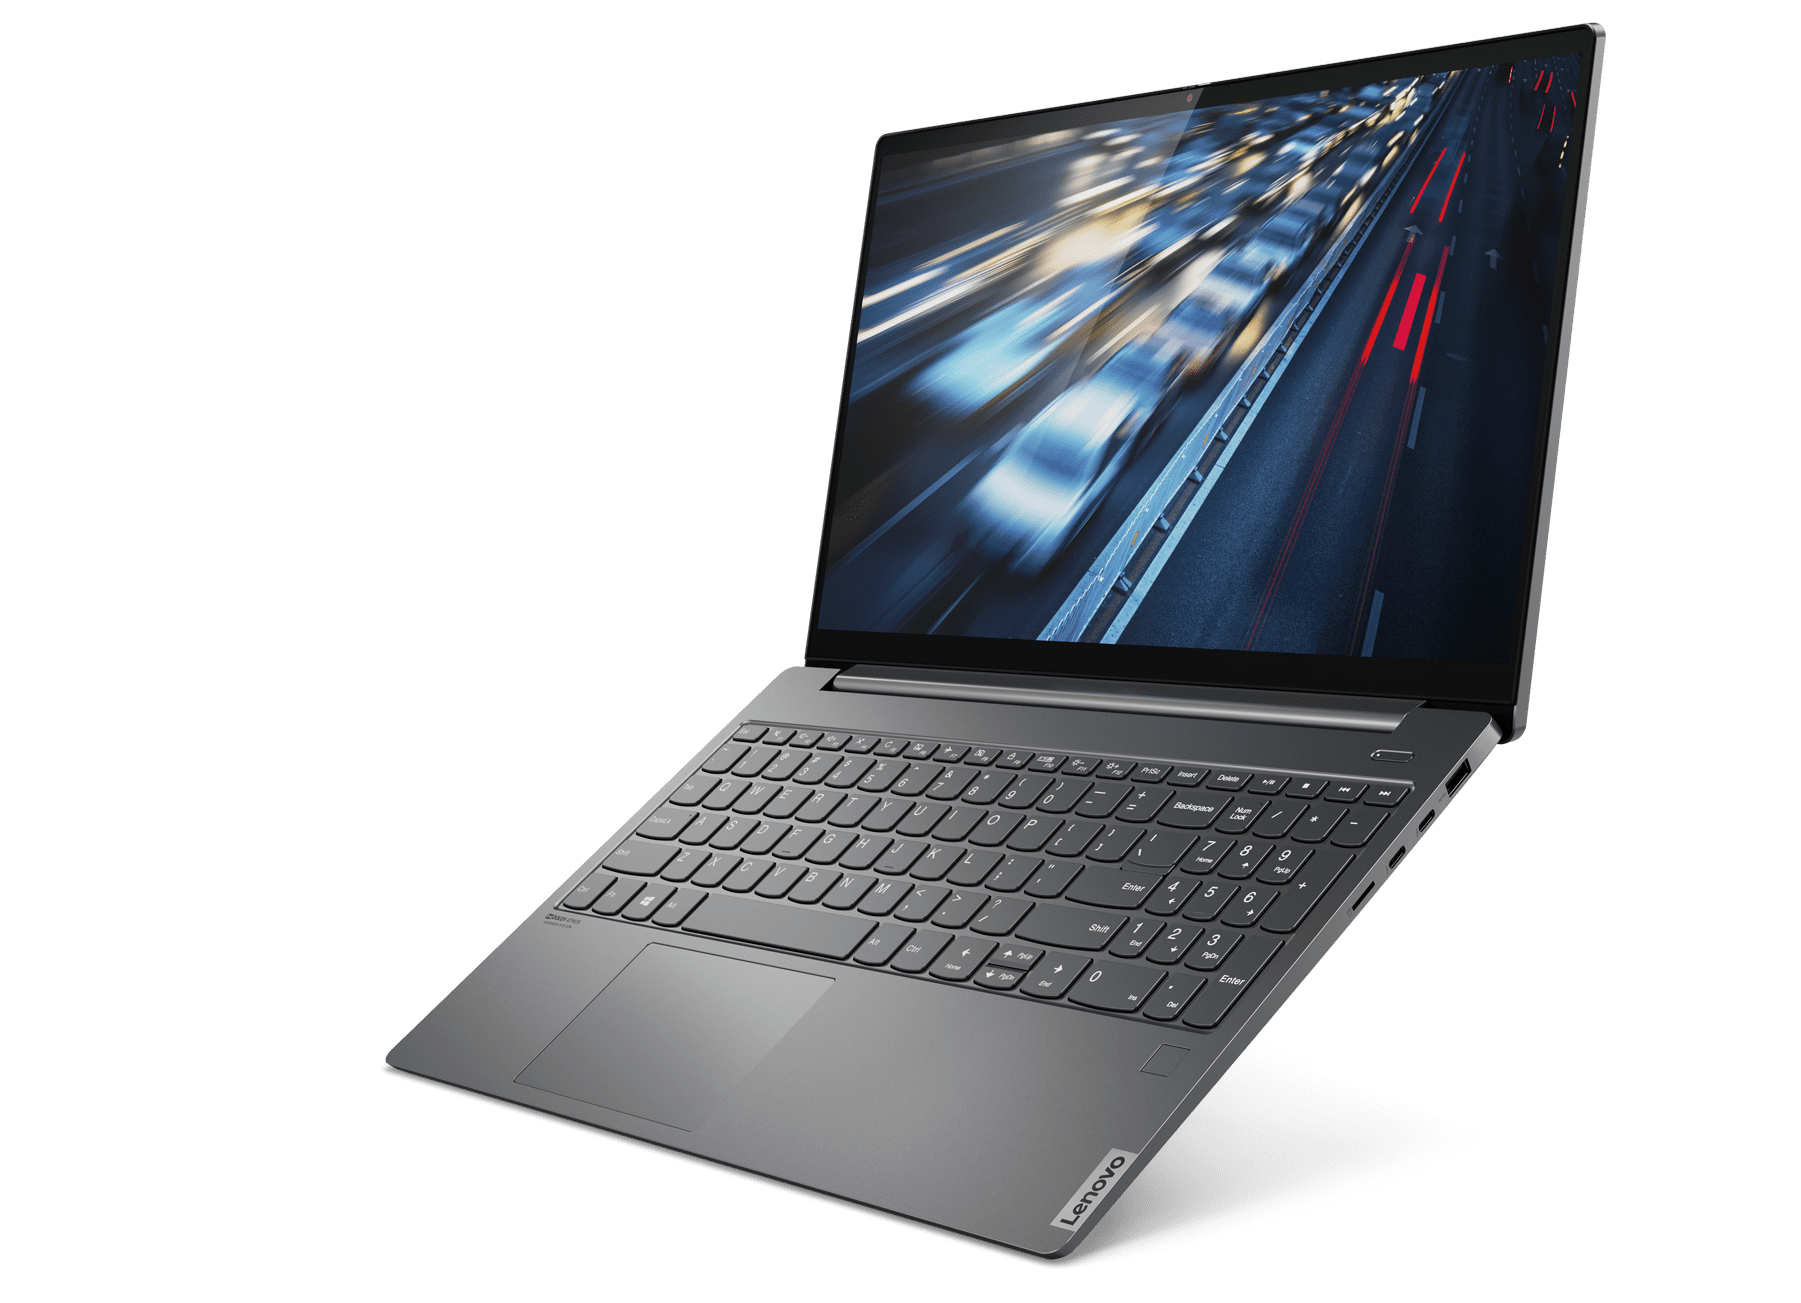 The 15-inch Yoga S740 offers NVIDIA GeForce GPUs for intense visuals.